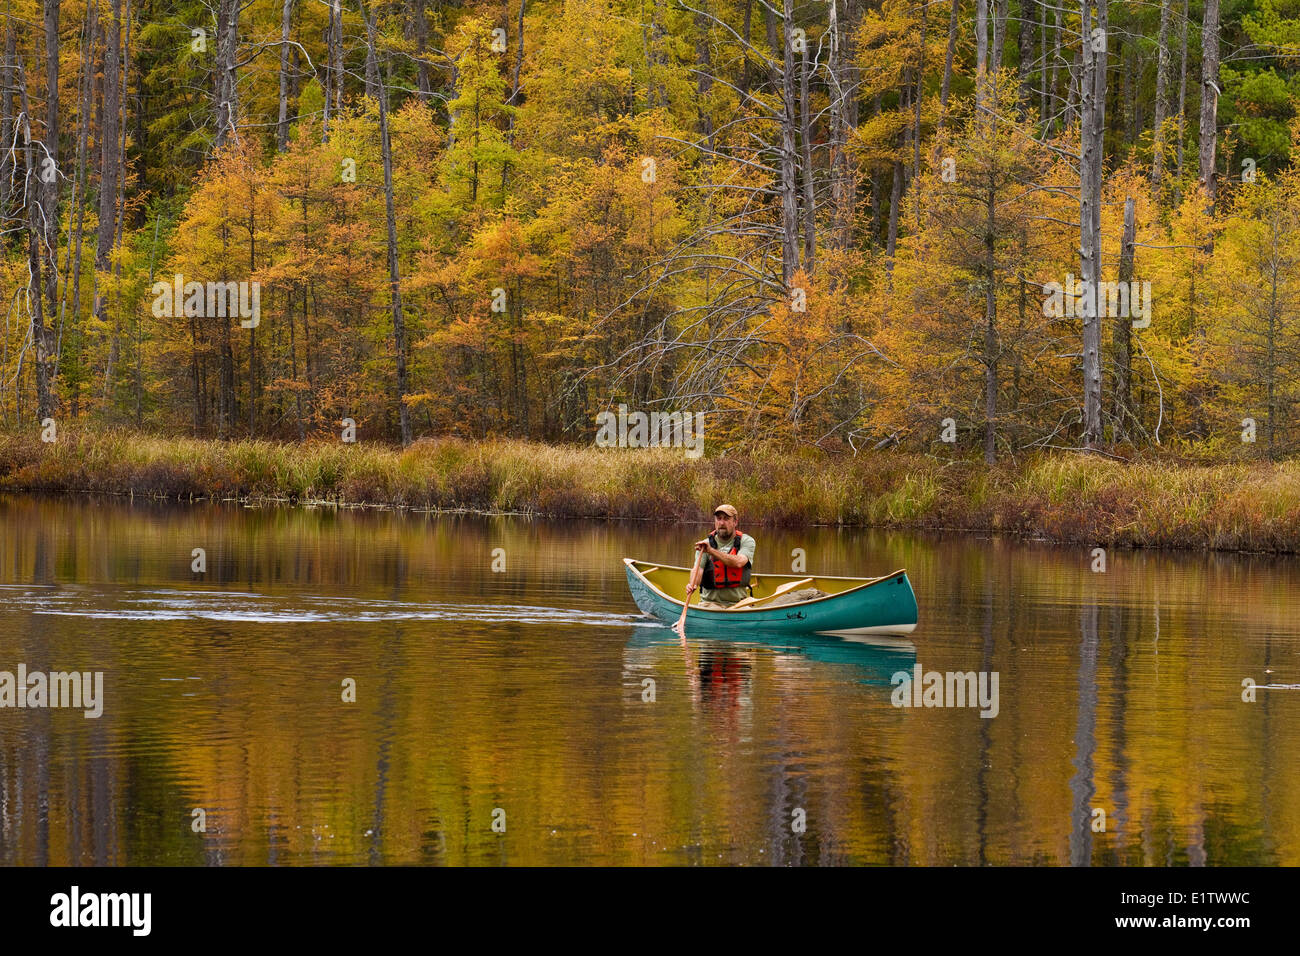 Man paddles canoe on still water of small creek in northwestern end of Algonquin Park, Ontario, Canada. - Stock Image